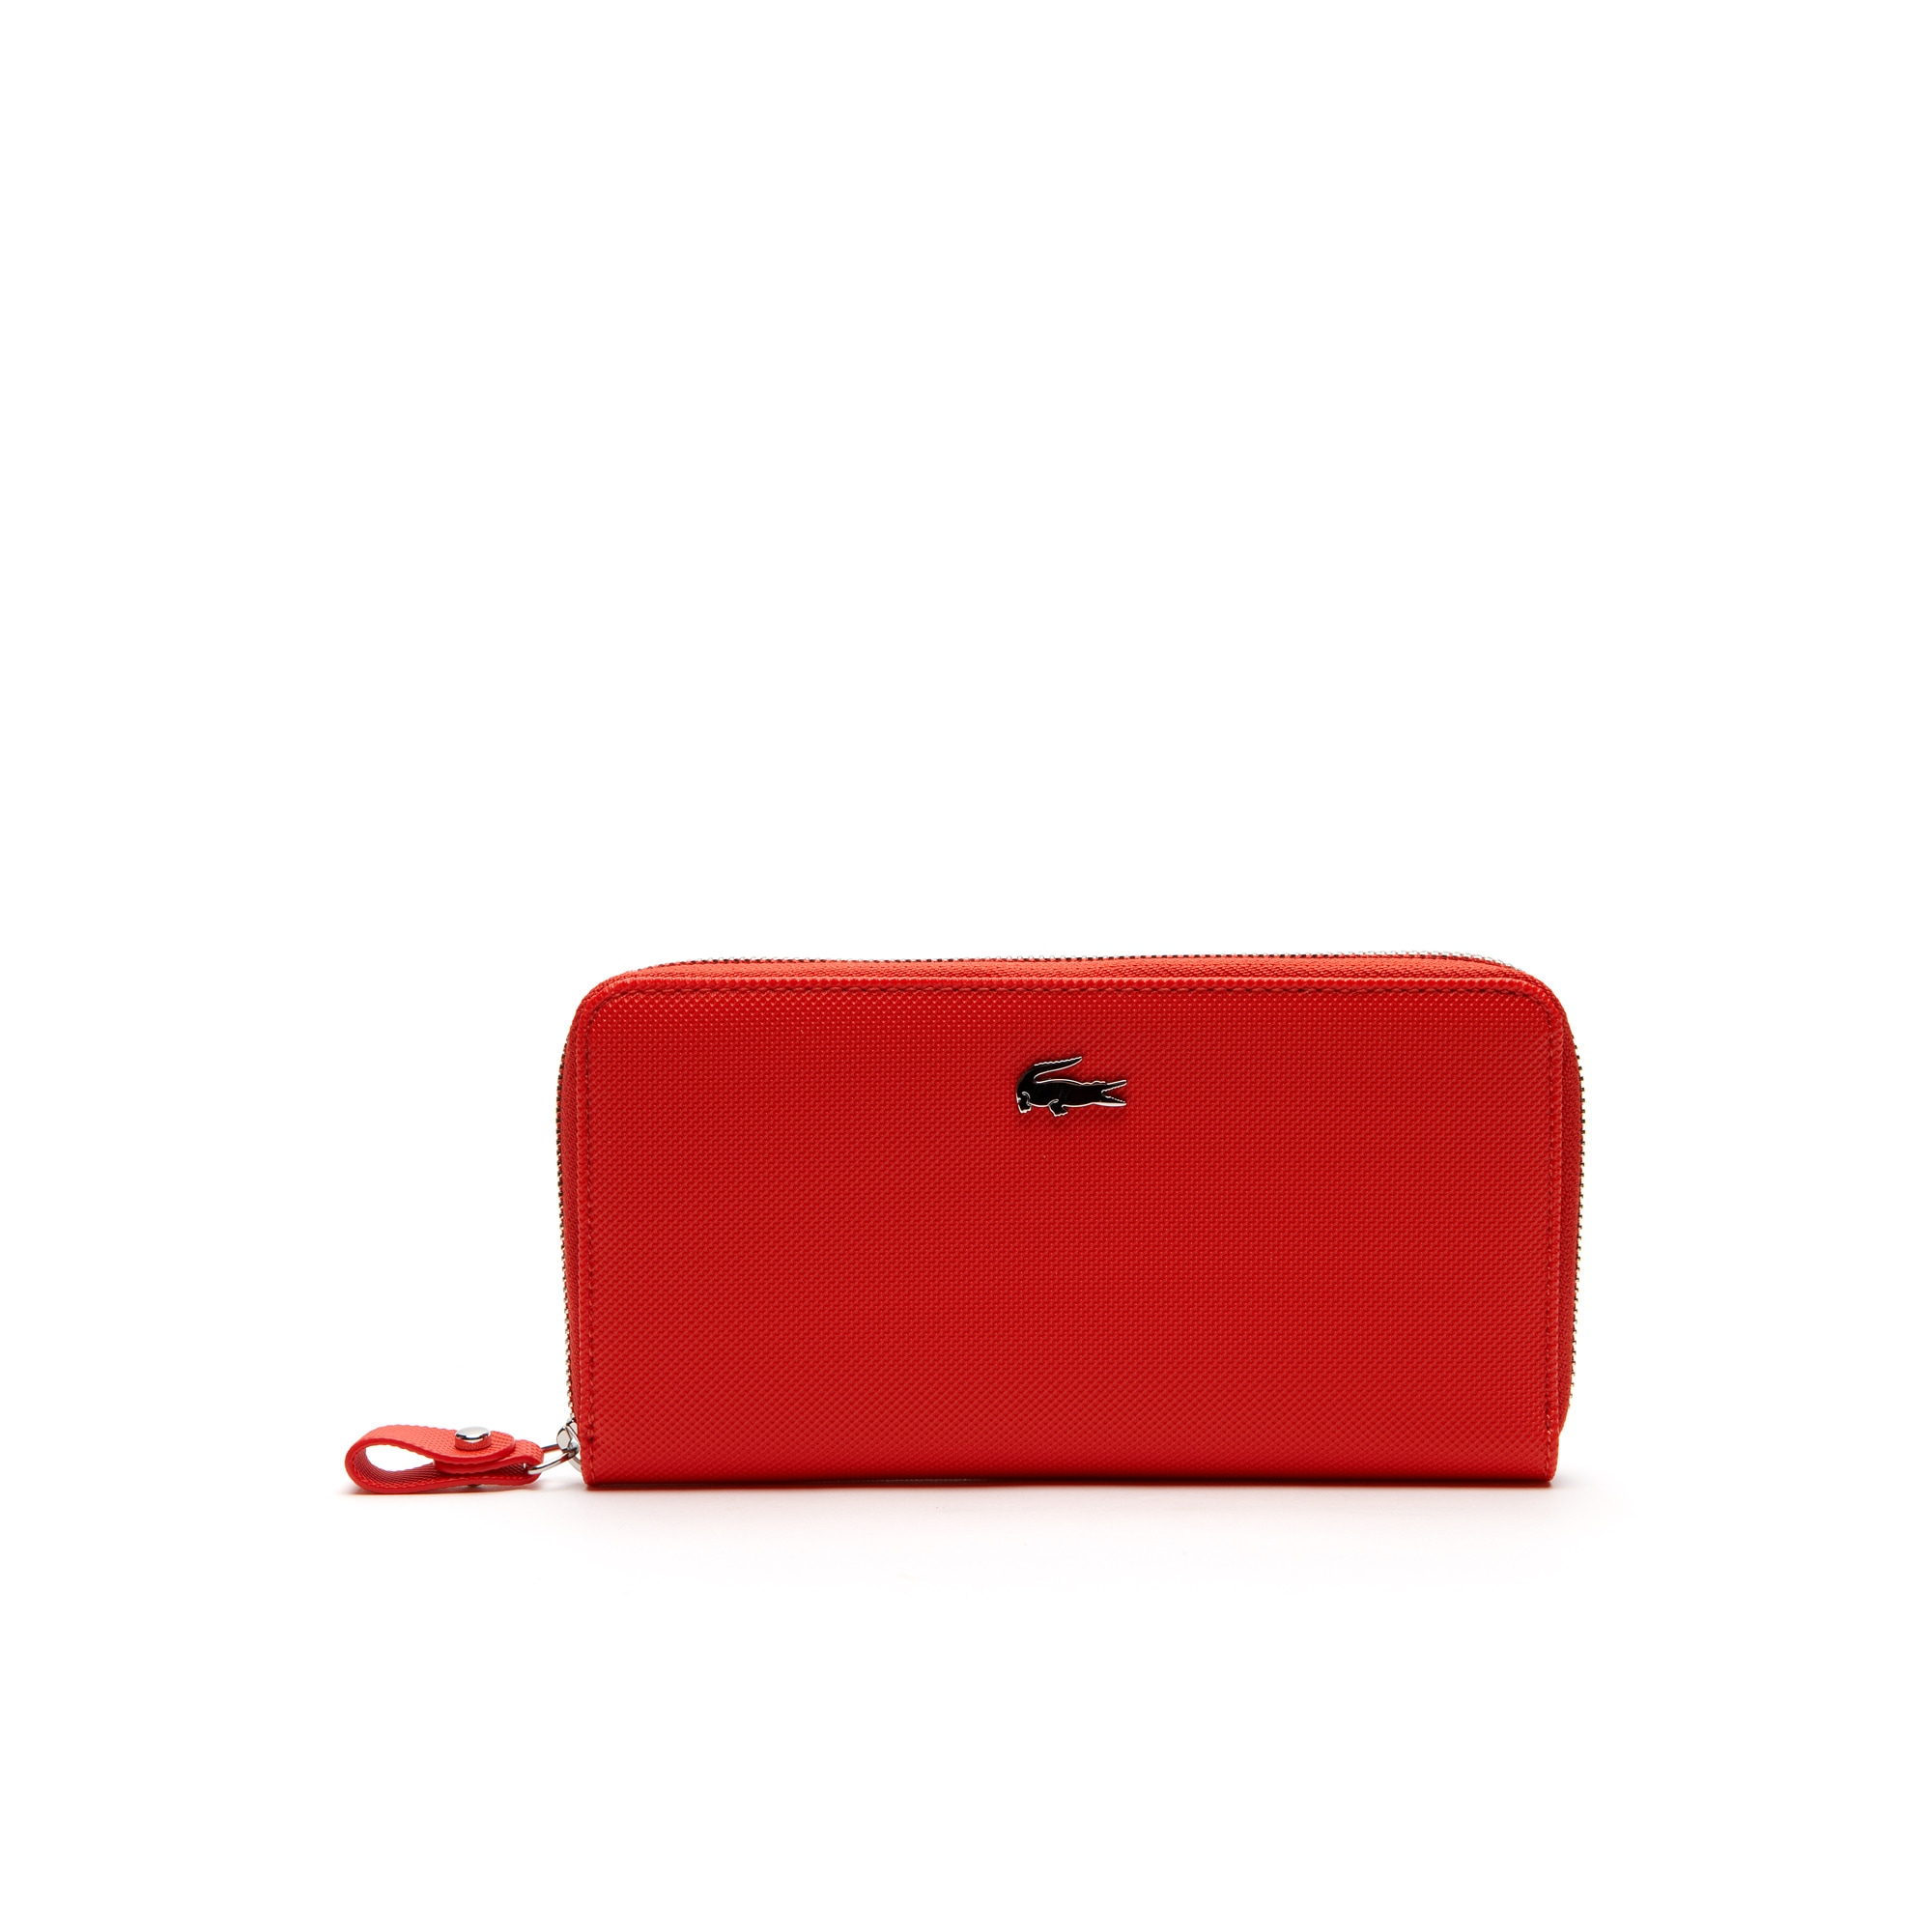 Daily Classic zippered wallet - large format